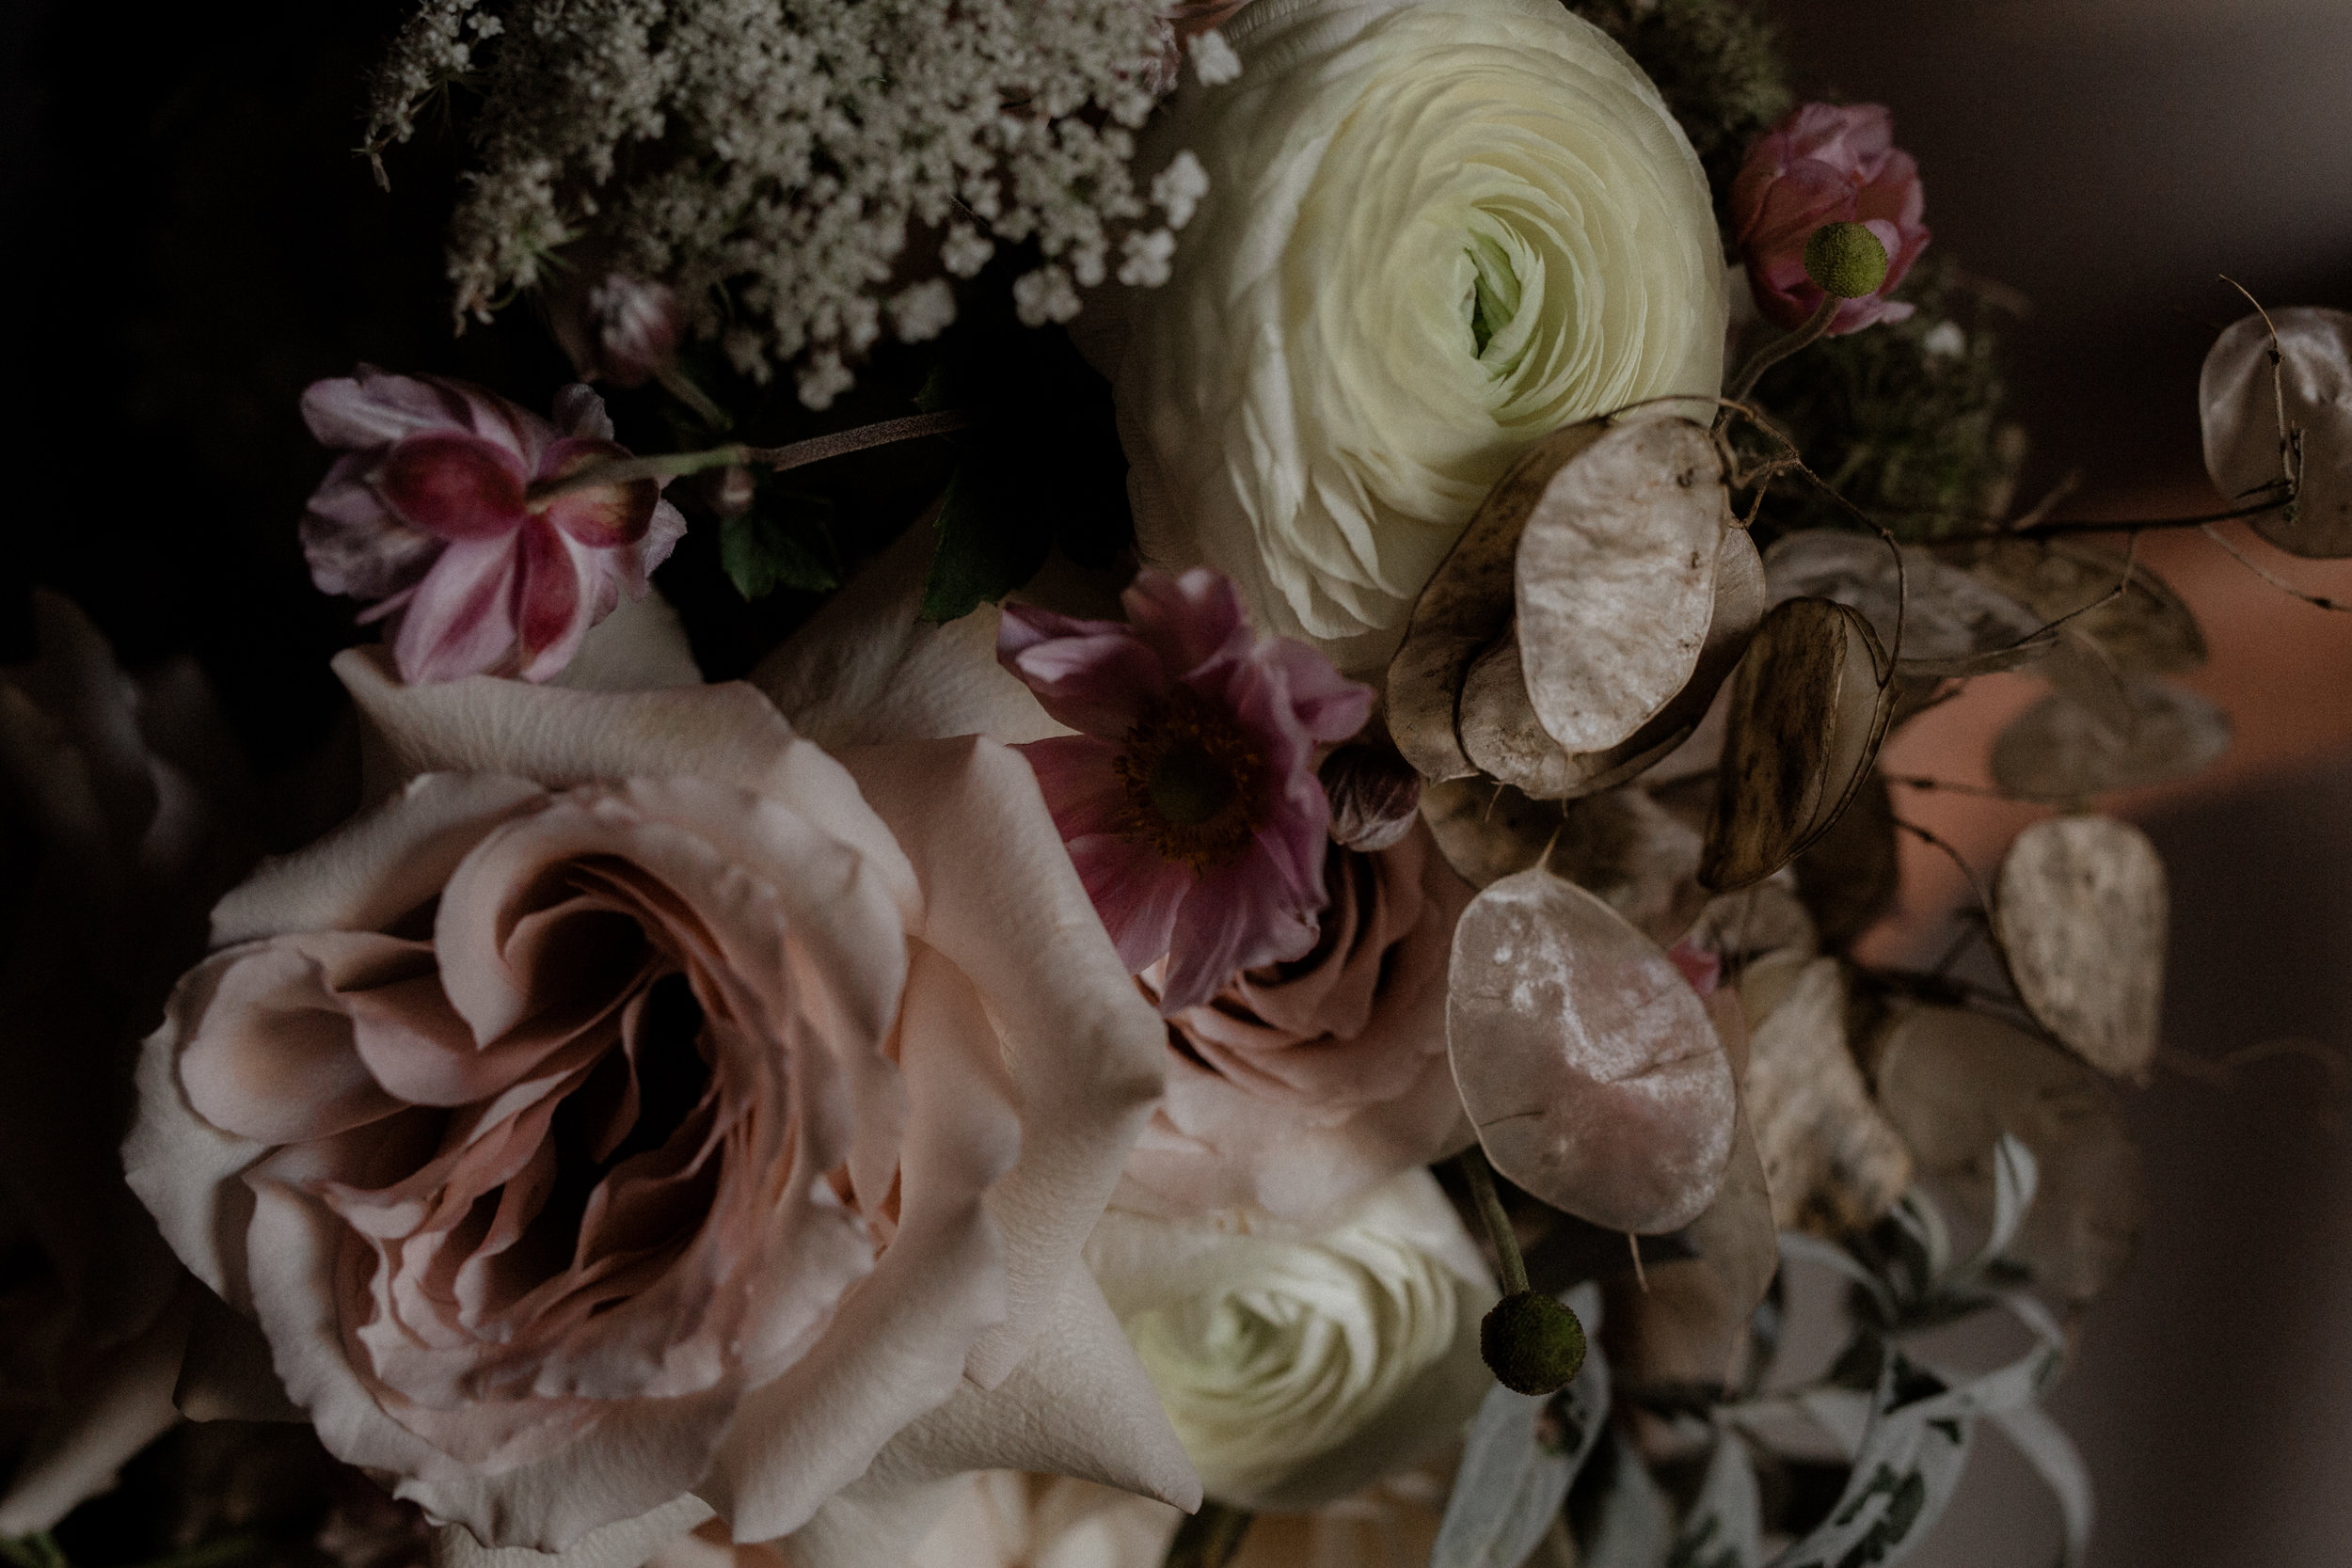 Fall wedding flowers by Nectar & Root | Wedding floral design services in Burlington, Vermont (VT) | Ranunculus, garden roses, queen anne's lace, silver dollar seedpods